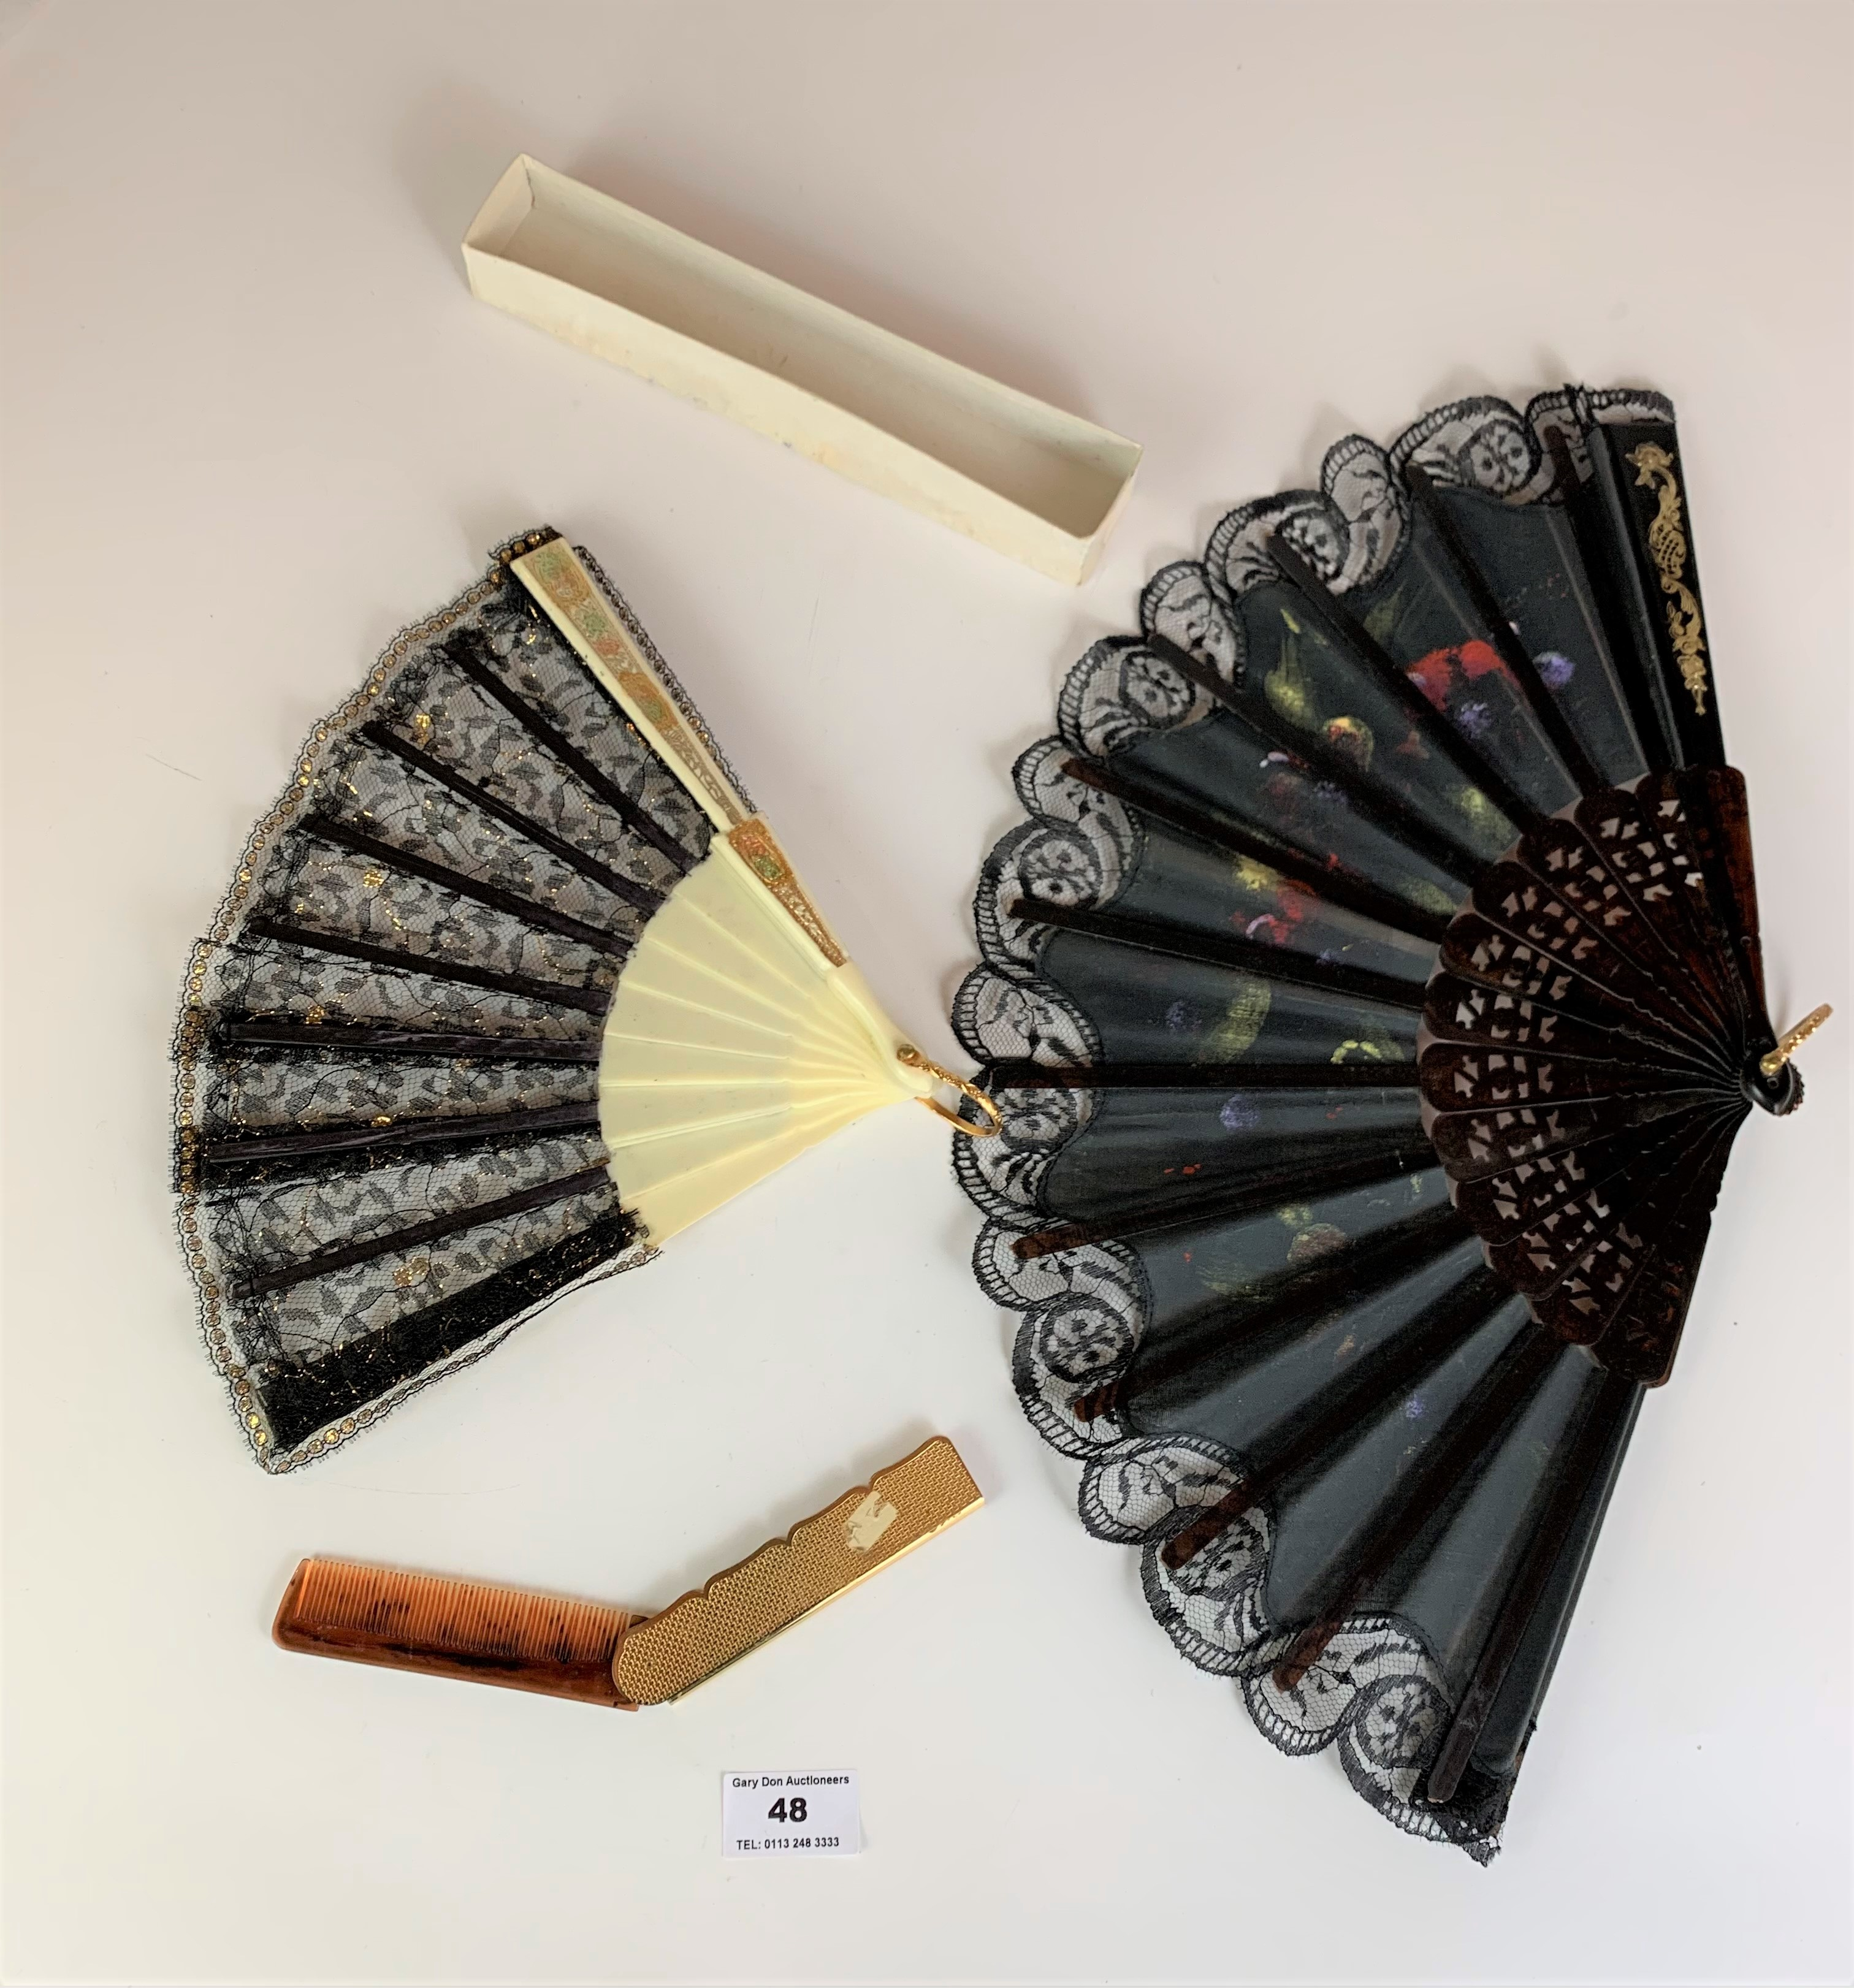 2 fans and a comb - Image 4 of 4